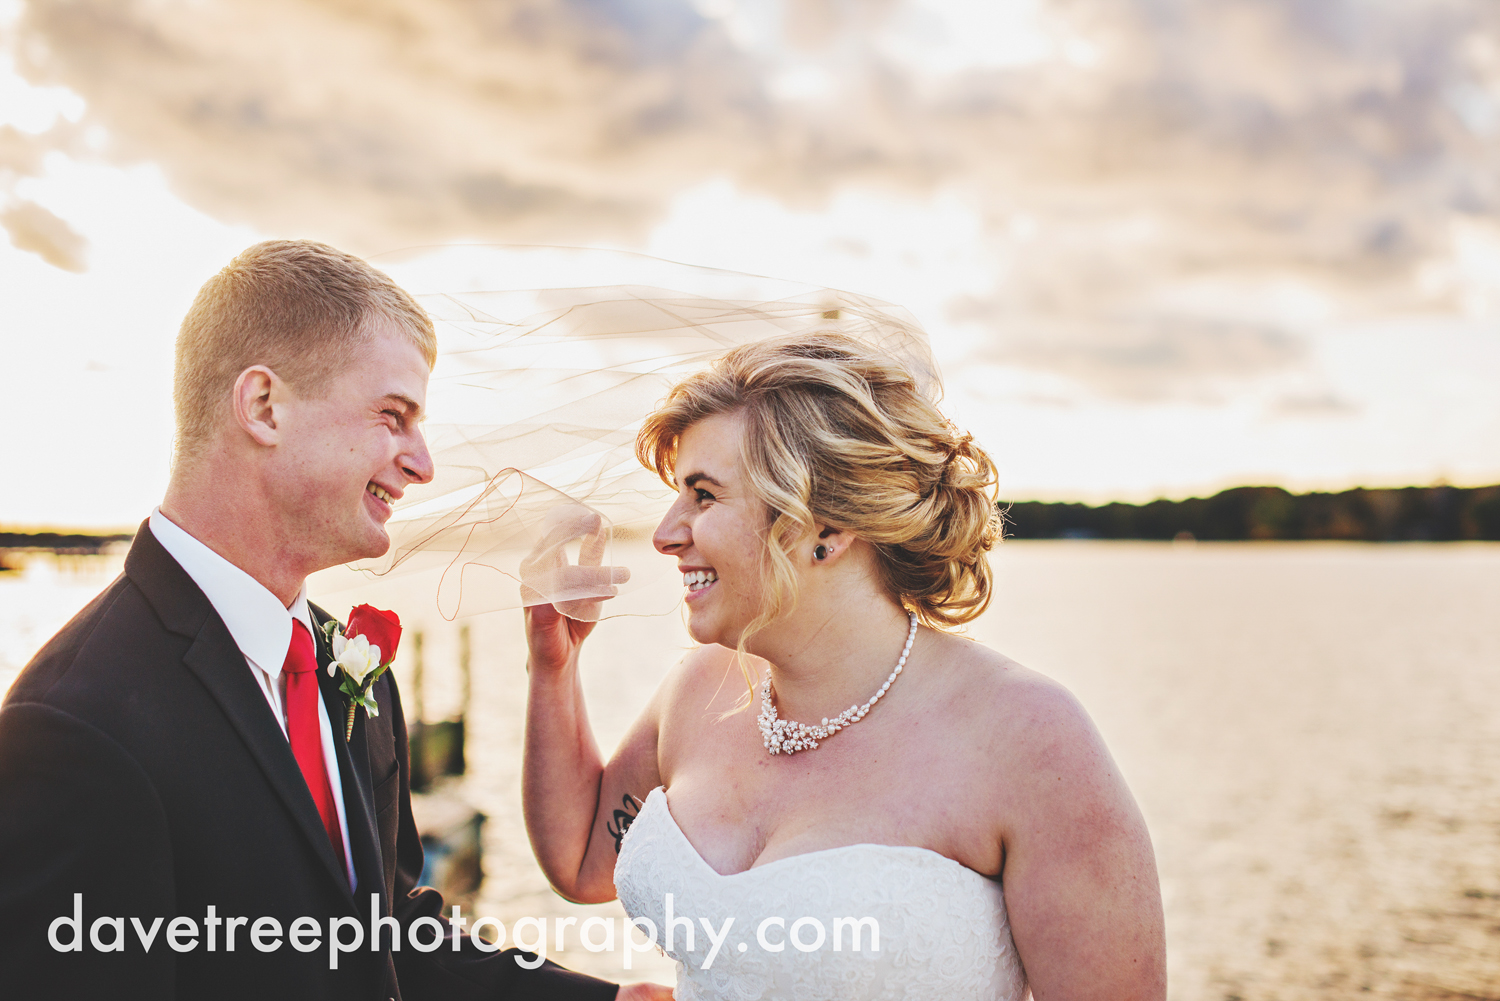 holland_wedding_photographer_14.jpg